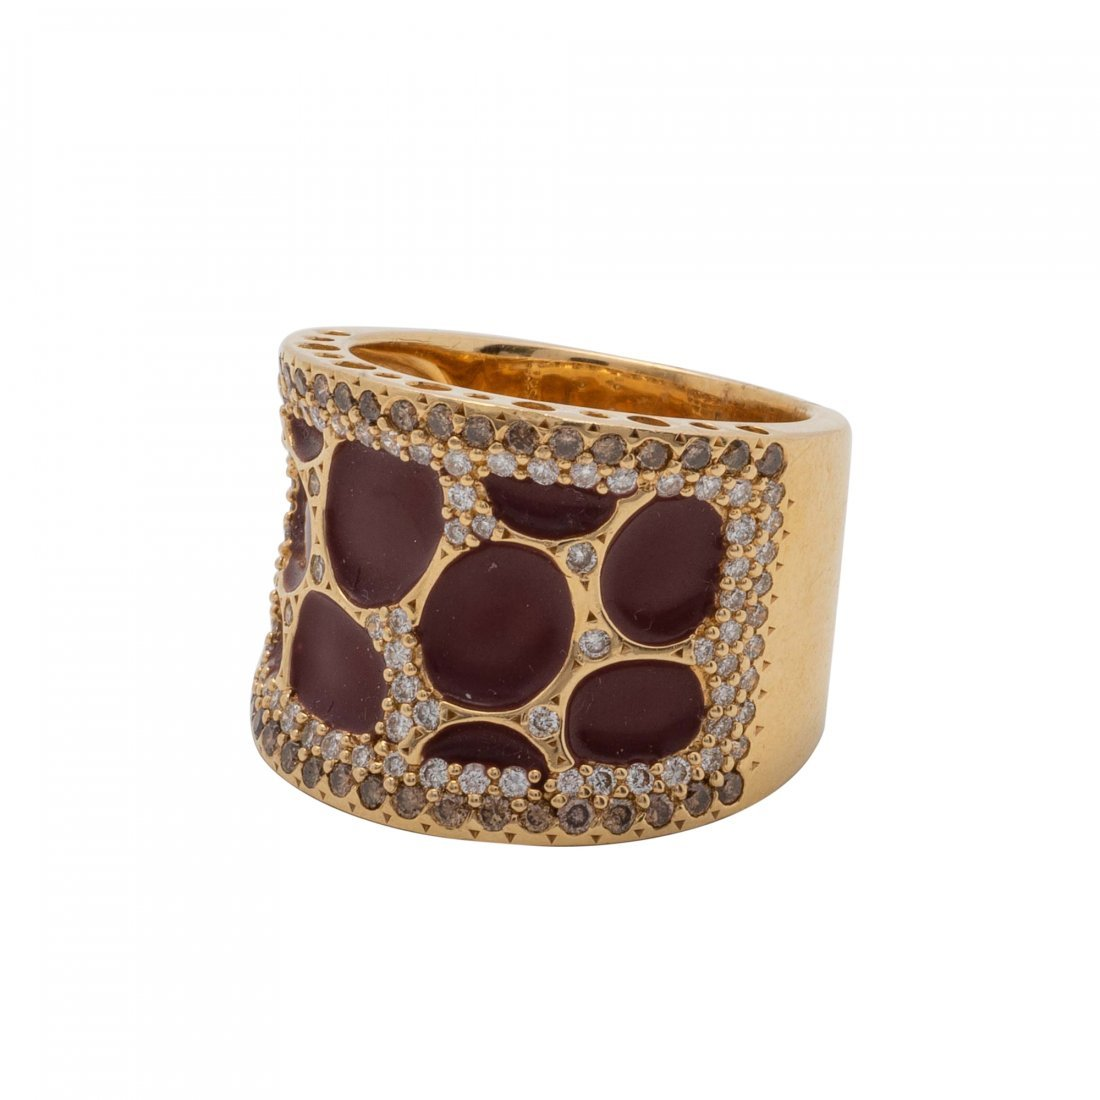 Gold, Colored Stone and Diamond Ring - 2